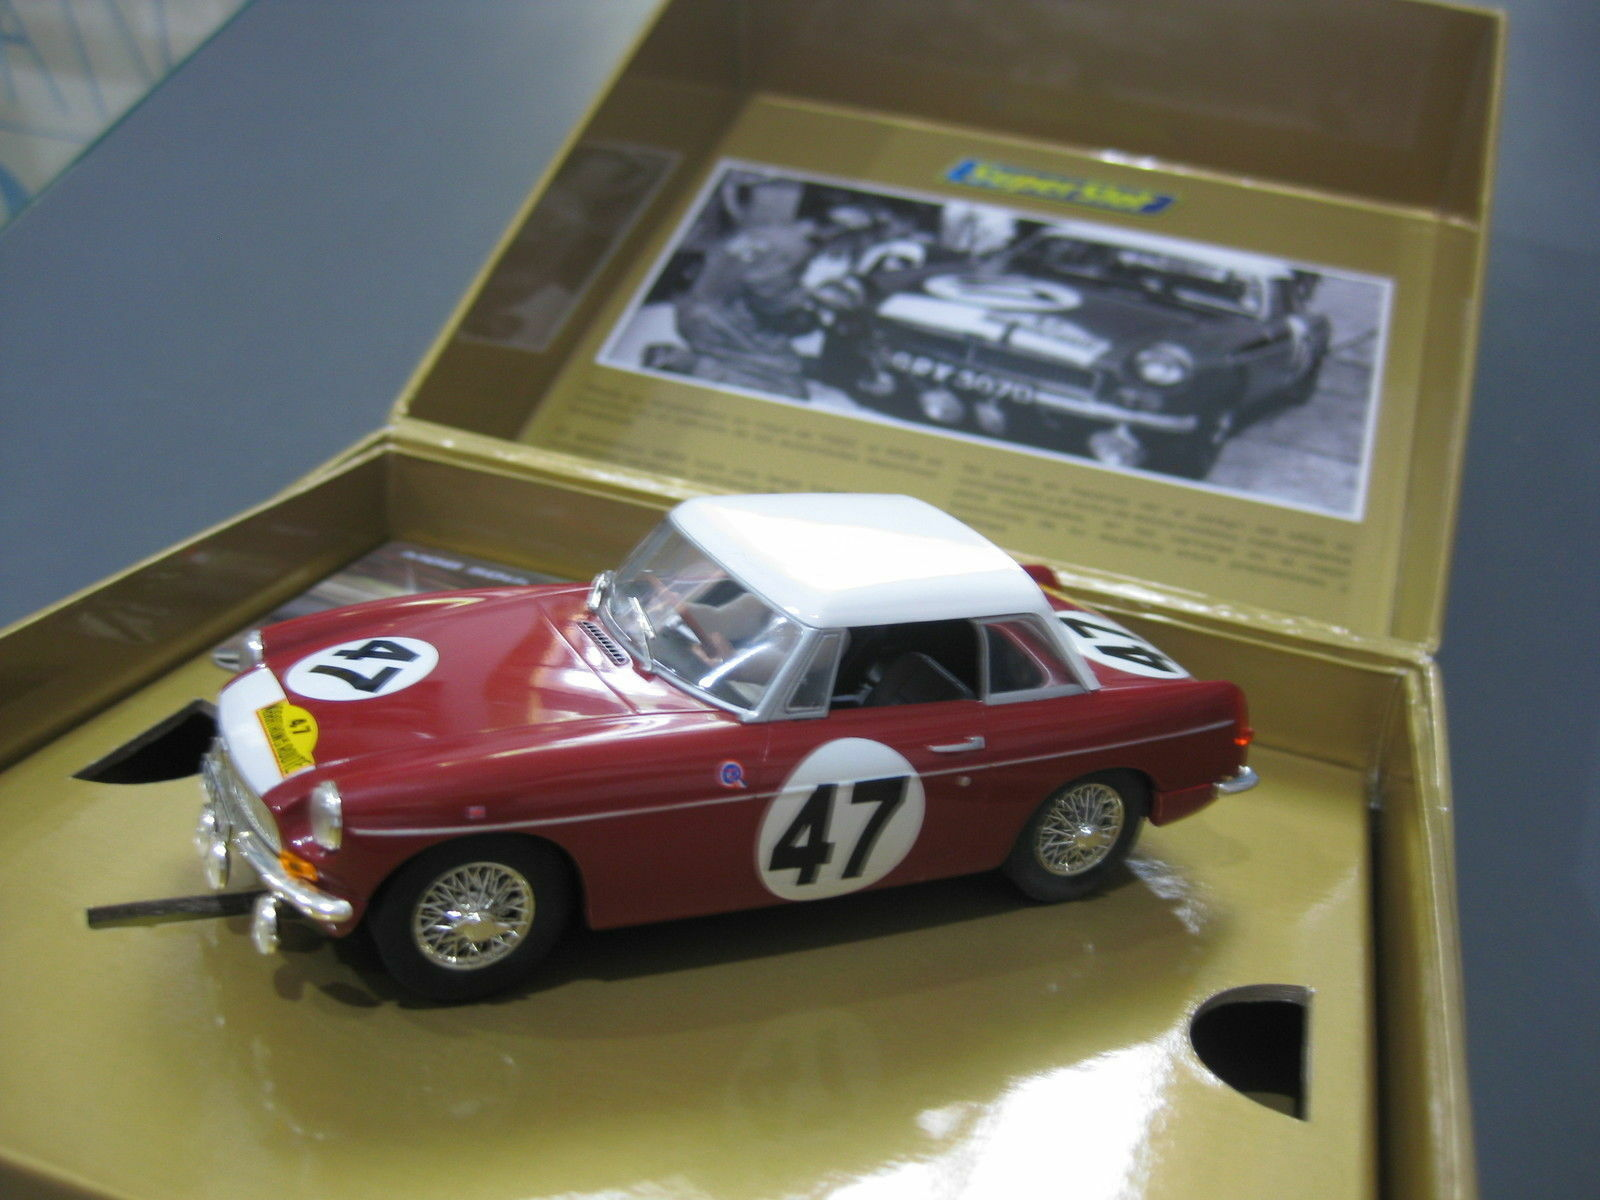 MGB RED BUS Nº47 EDICION SPECIAL 50 ANNIVERSARY MG OF SUPERSLOT REF. H3270A